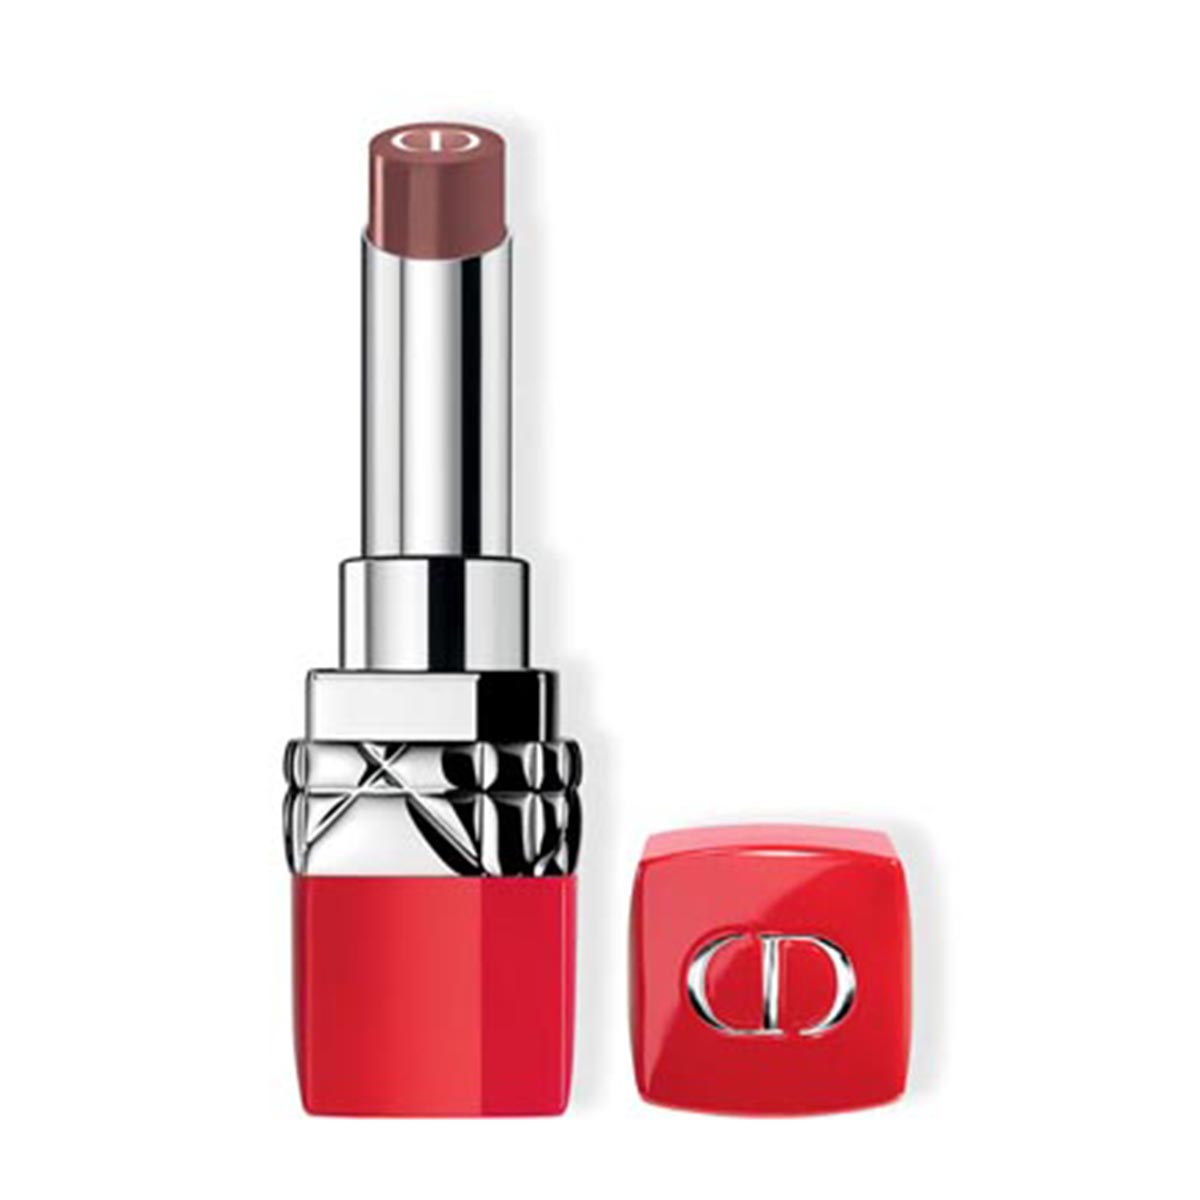 Dior rouge dior ultra care lipstick 736 nude